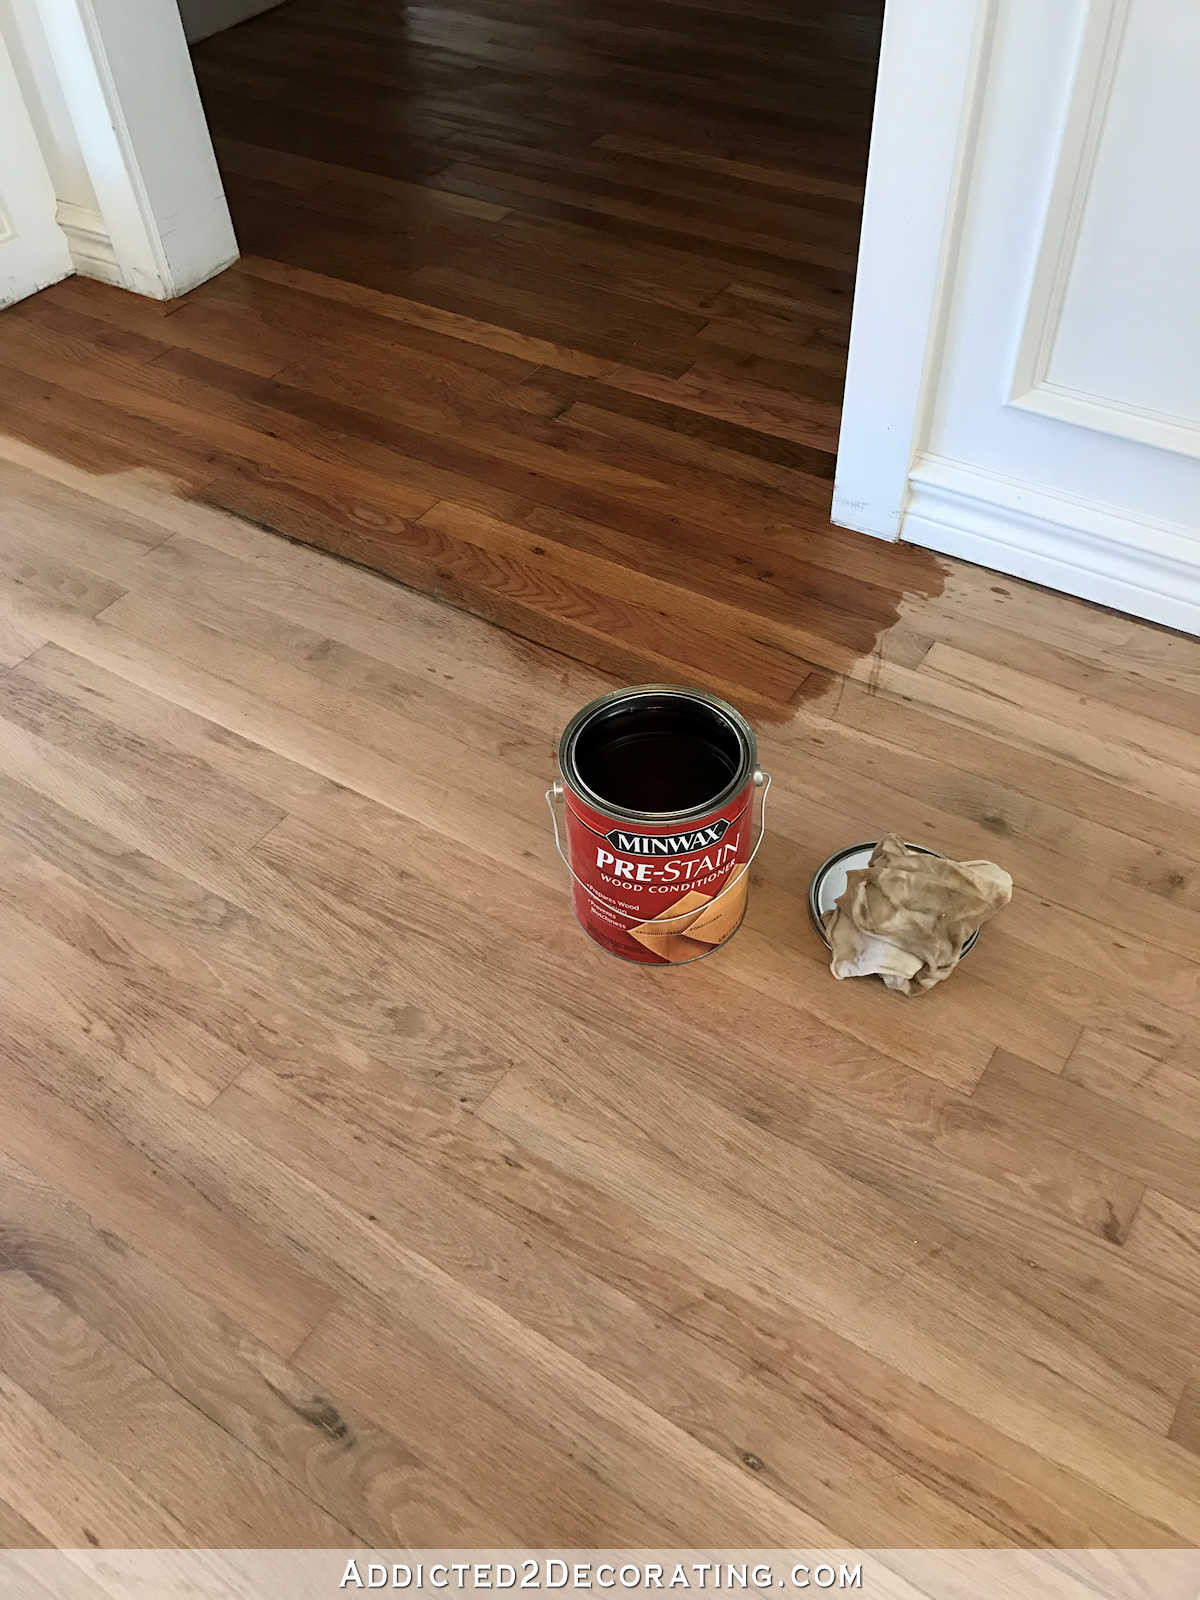 click hardwood flooring home depot of adventures in staining my red oak hardwood floors products process for staining red oak hardwood floors 1 conditioning the wood with minwax pre stain